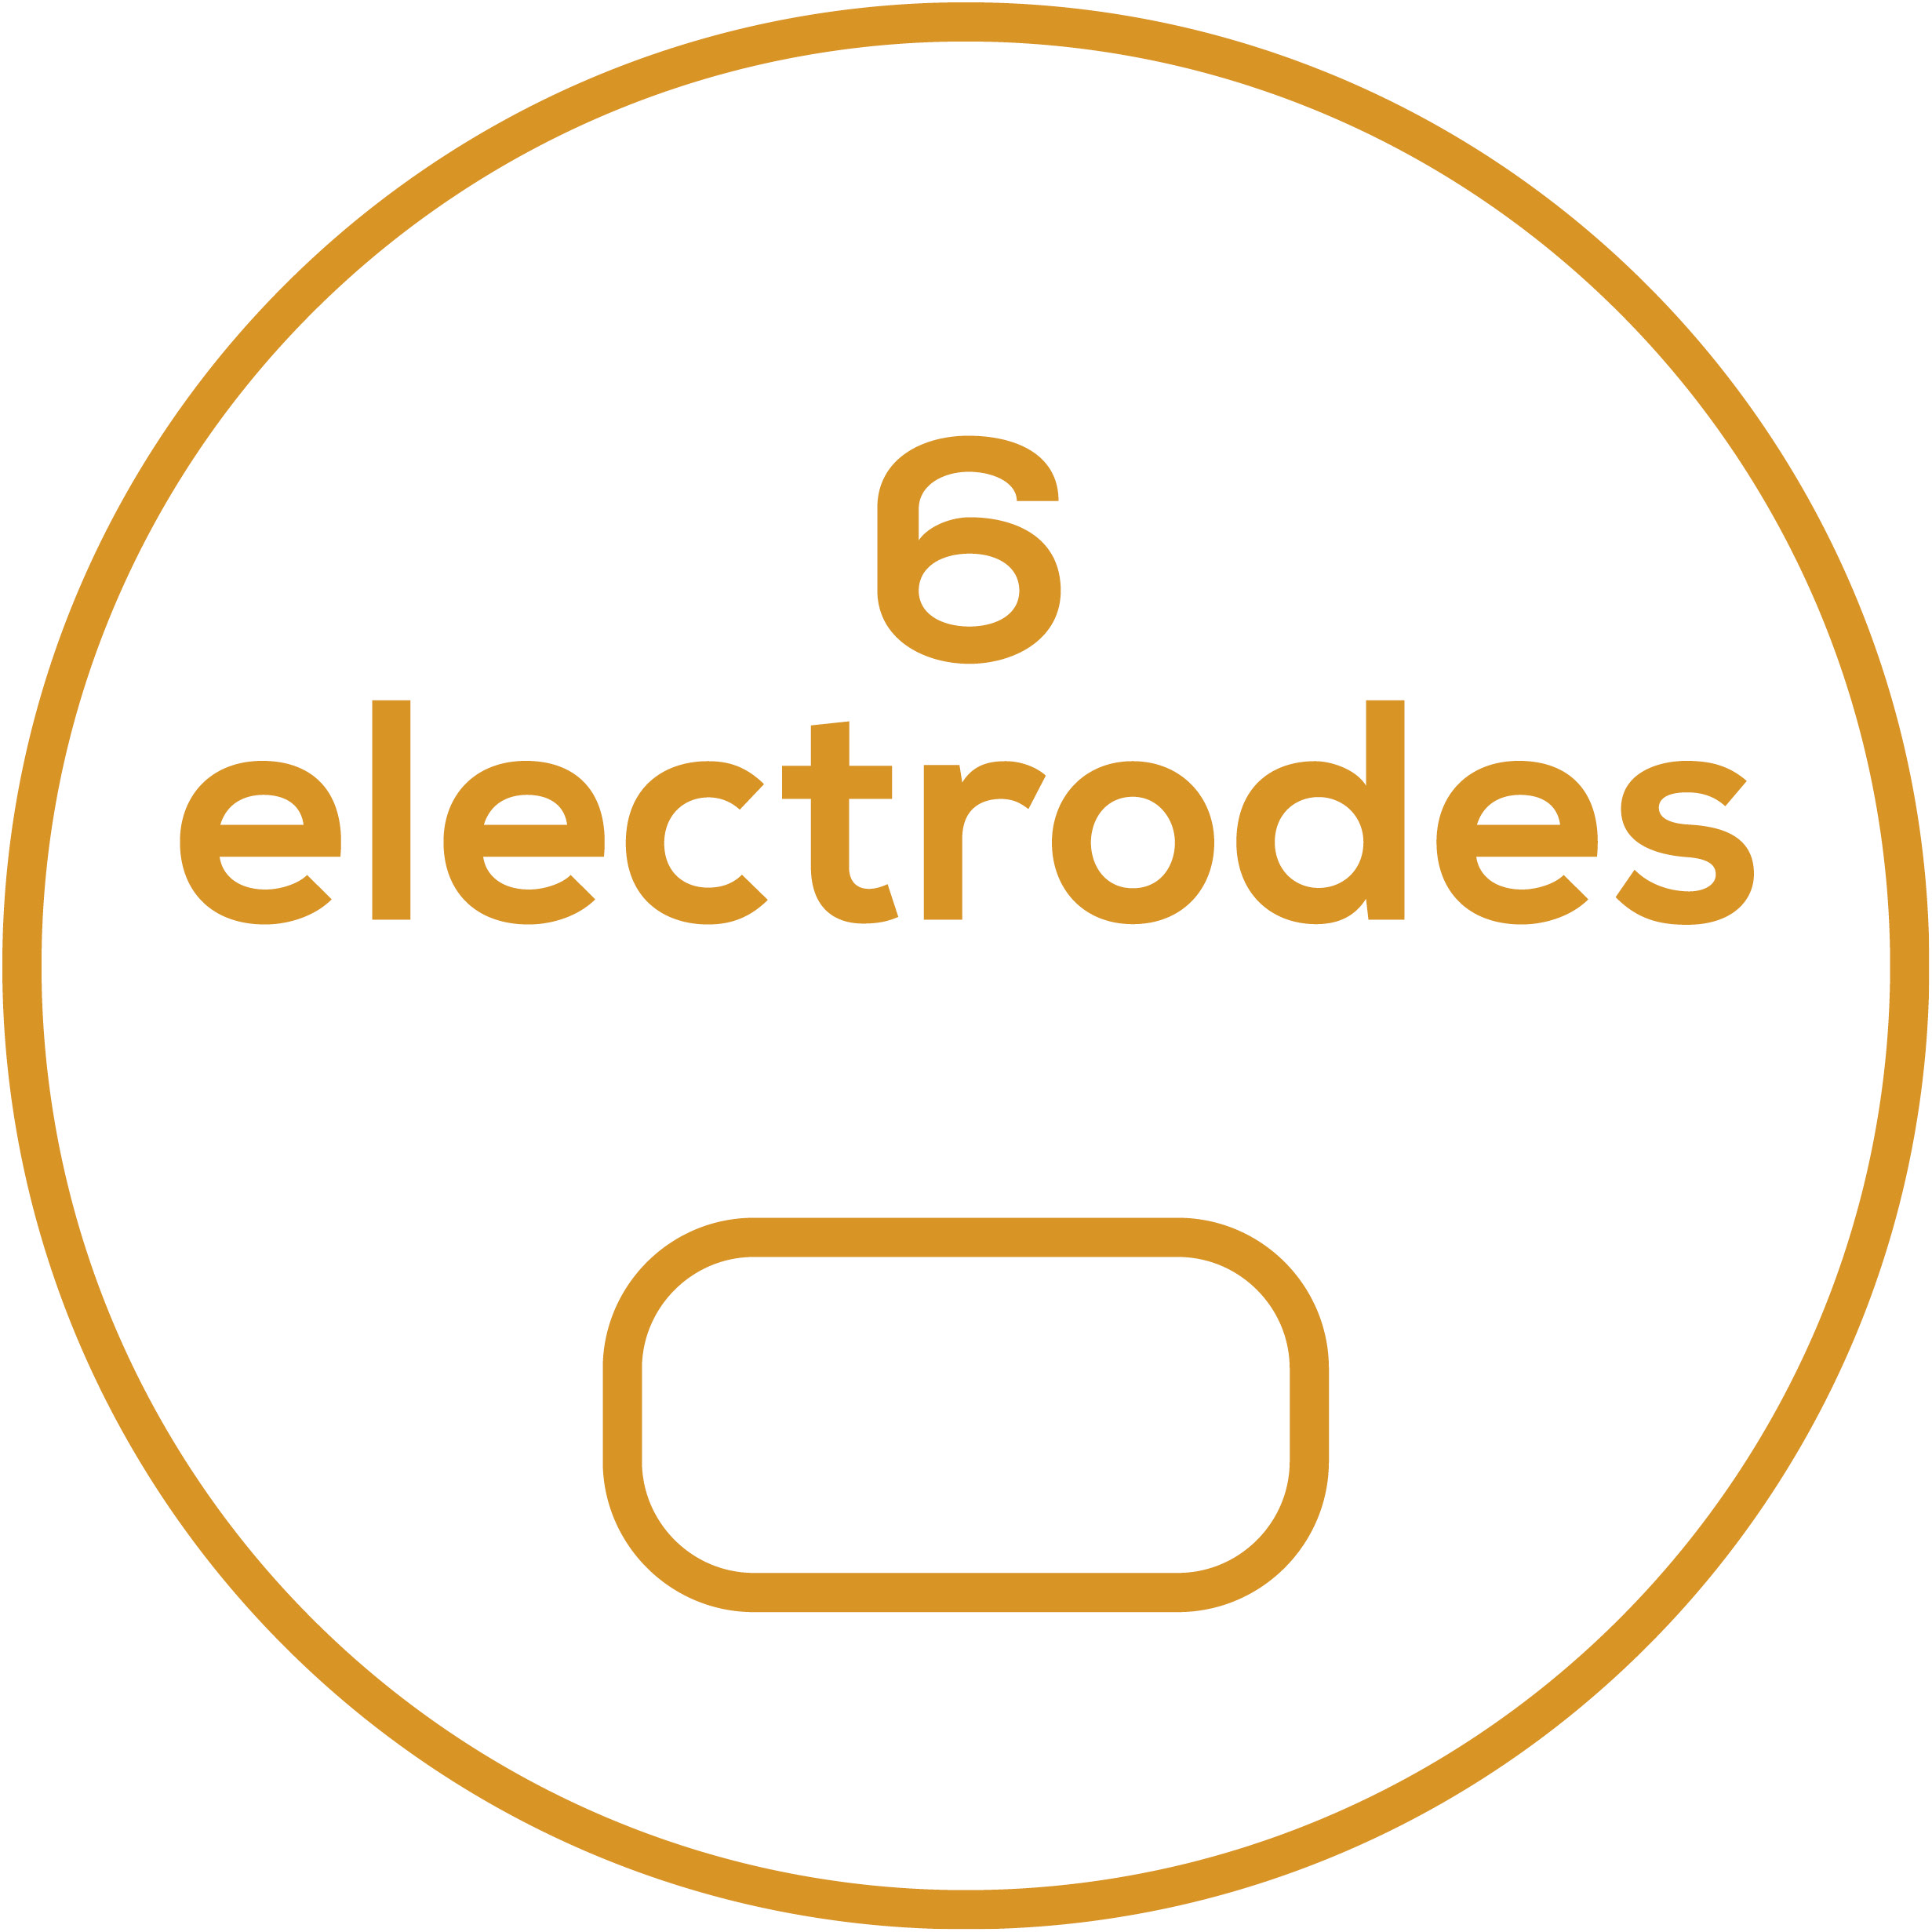 Accessories 6 self-adhesive electrodes